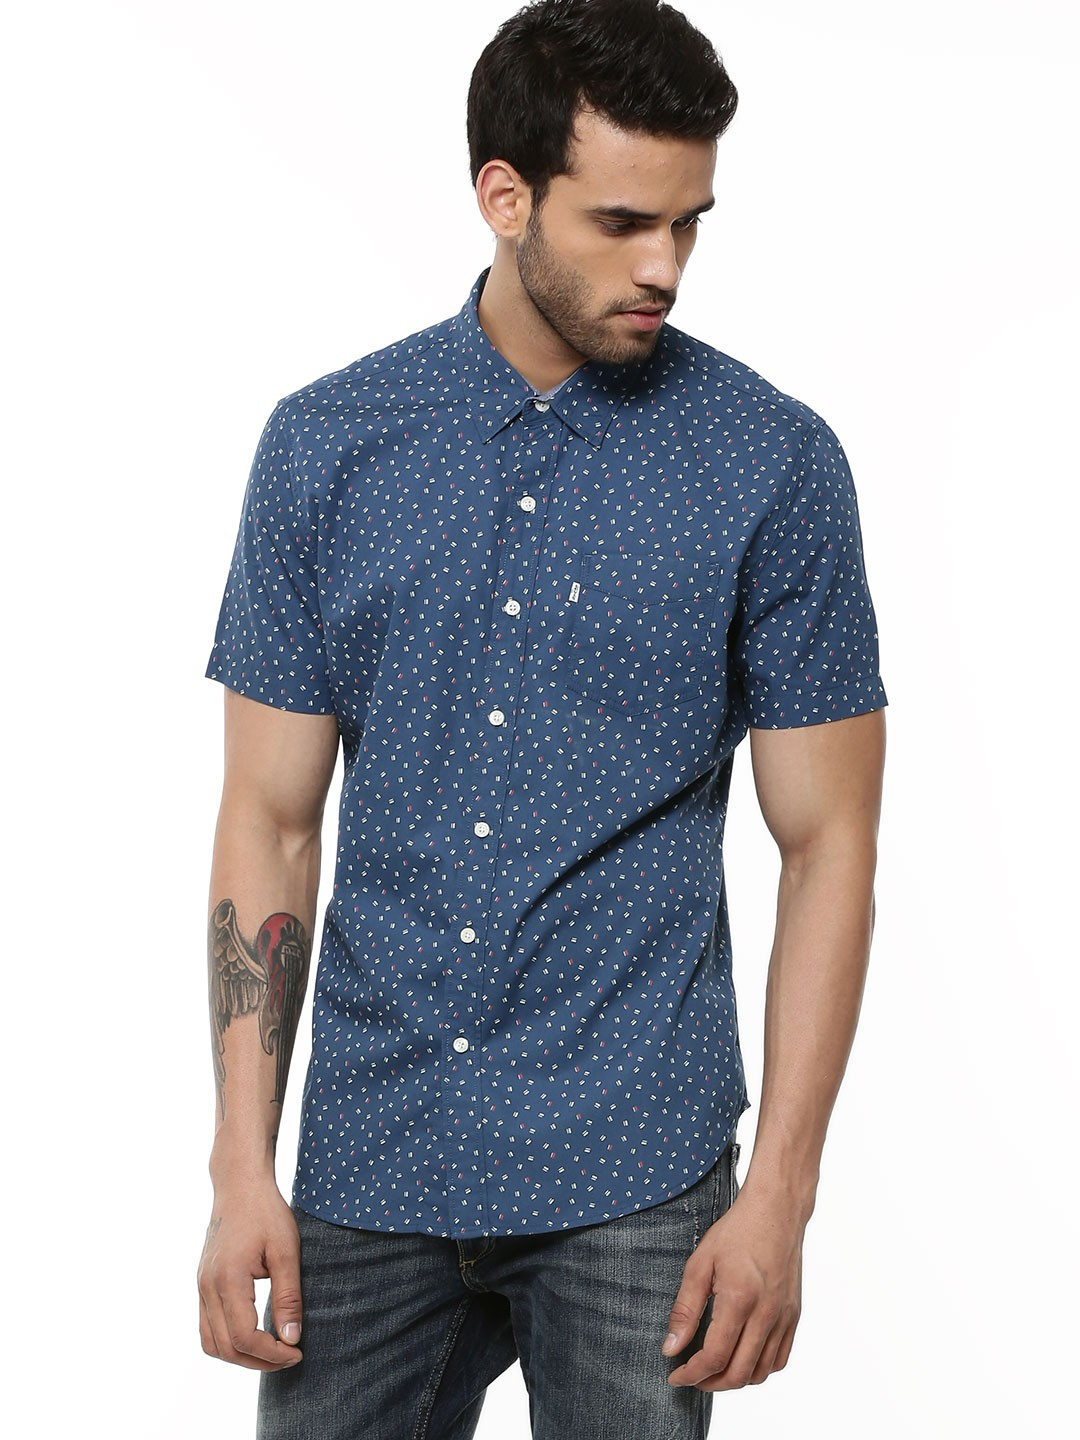 Buy levi 39 s all over printed shirt in short sleeve for men for Levi s short sleeve shirt